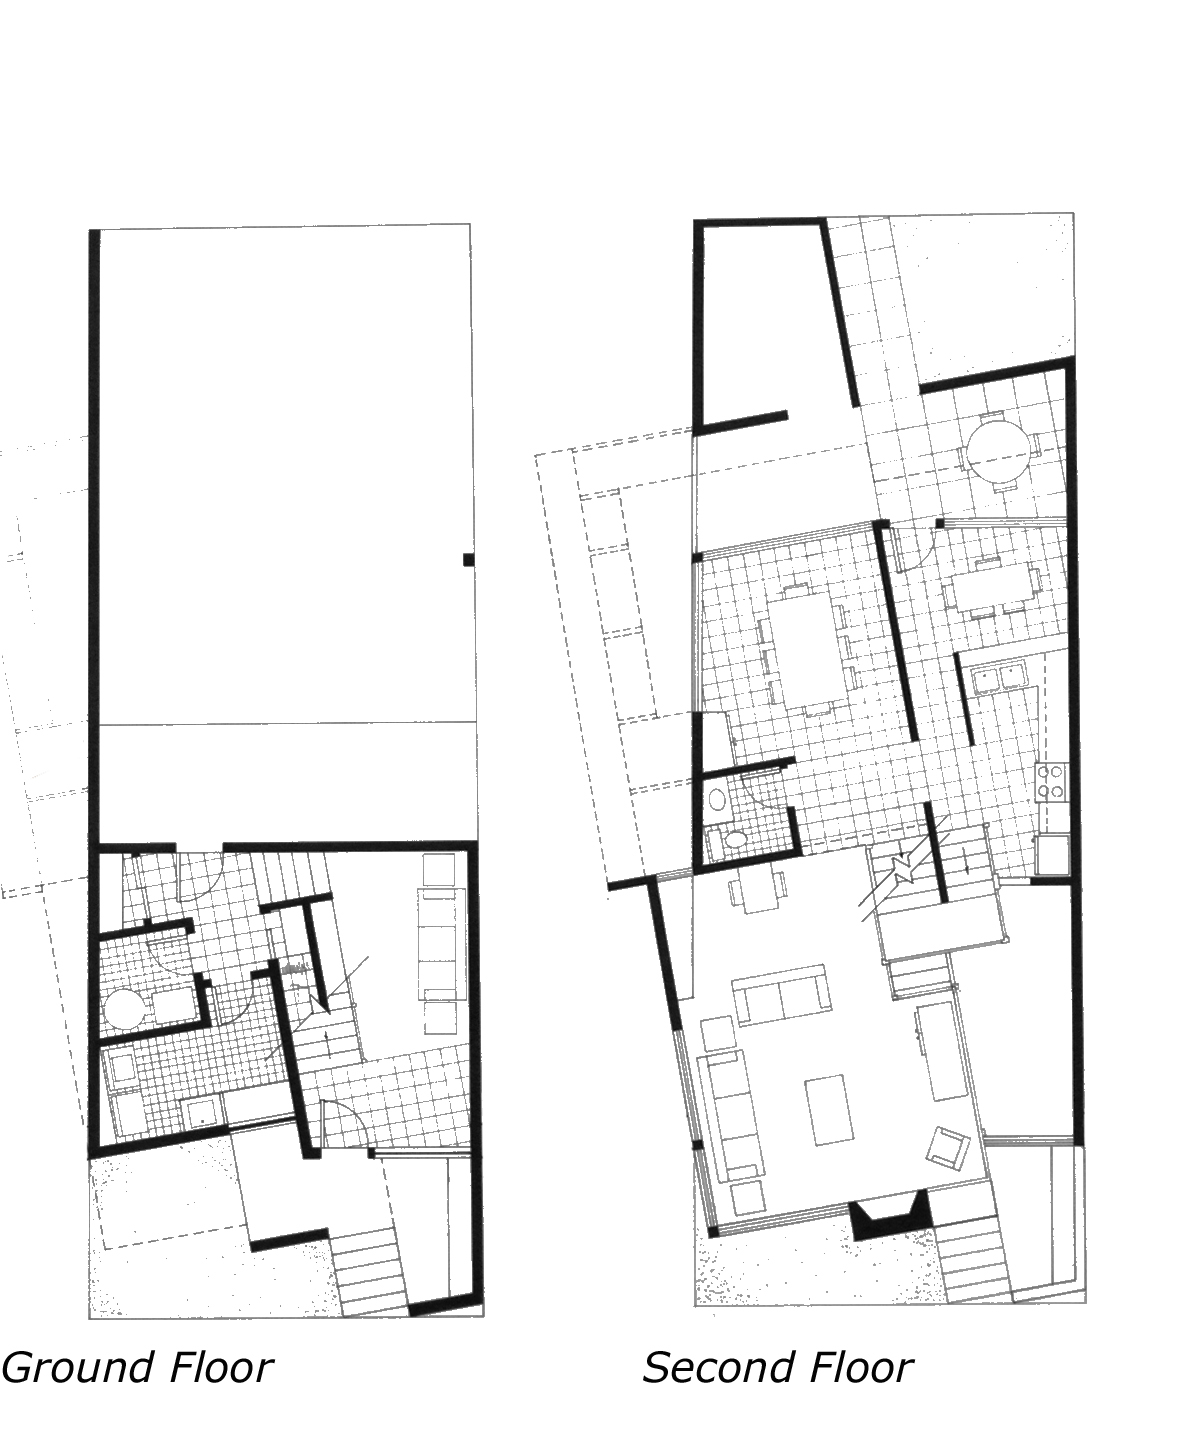 house site plan drawing at free for